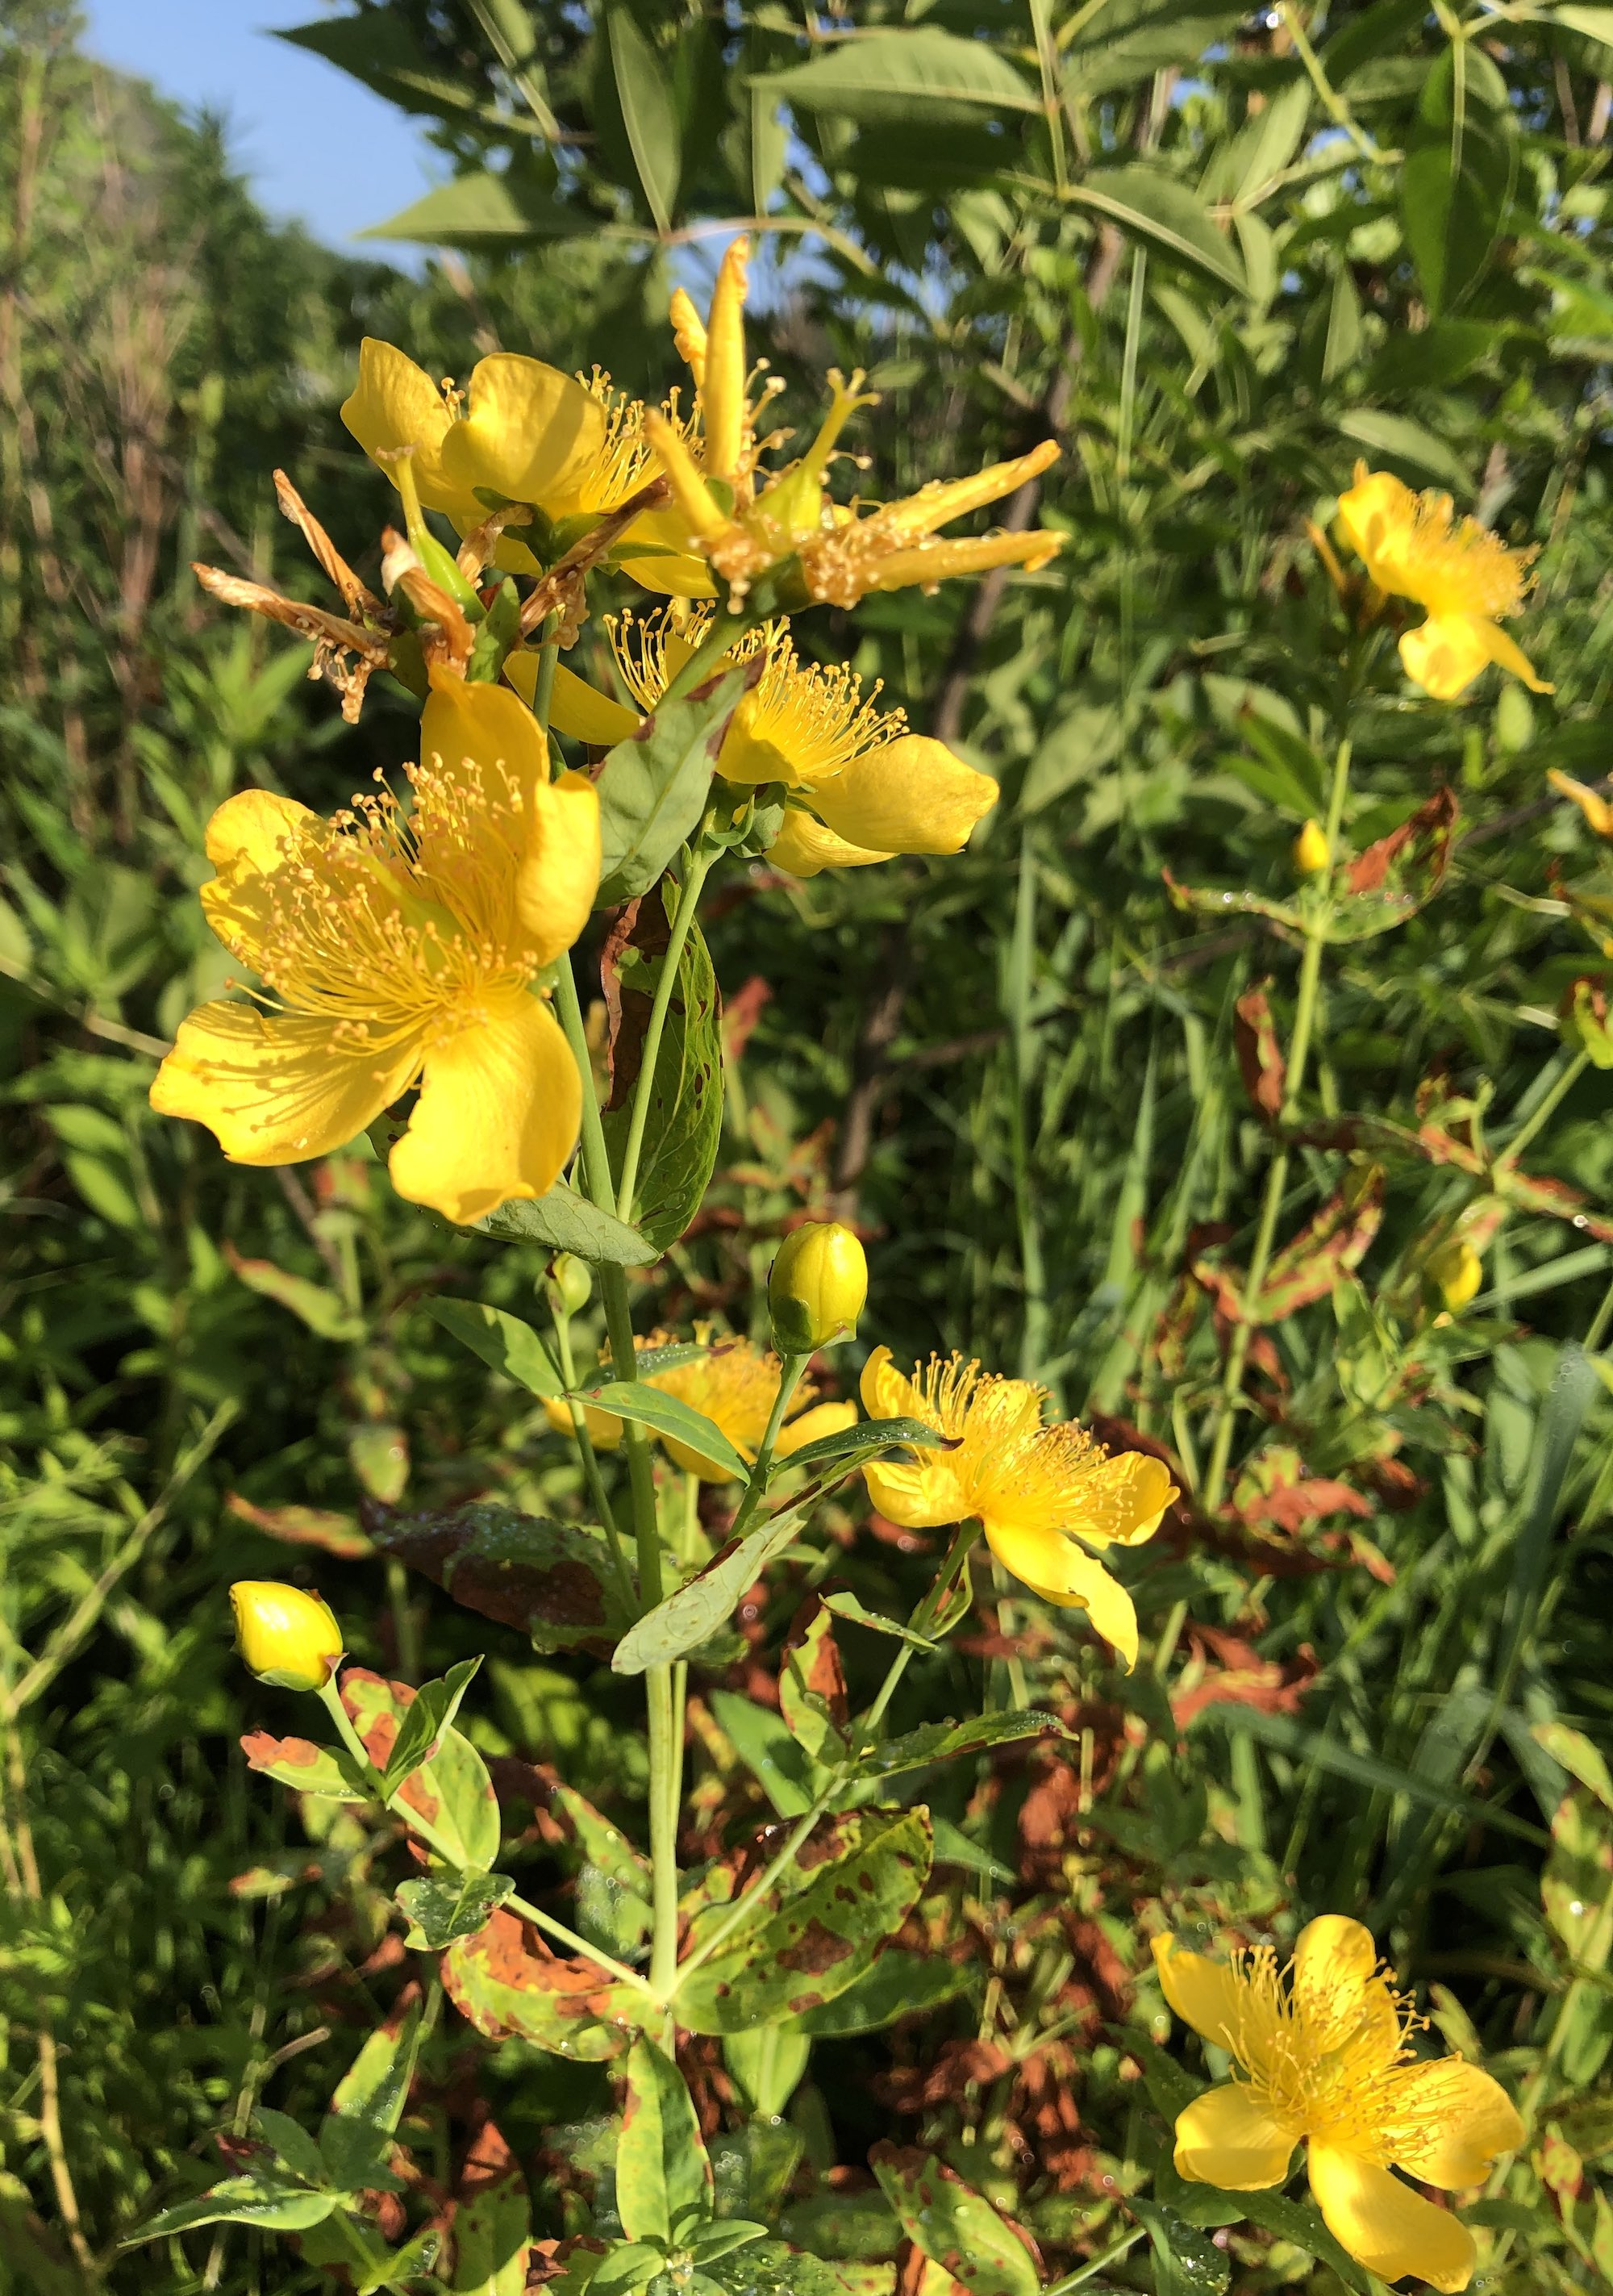 Great St. John's wort on bank of Marion Dunn Pond on July 10, 2019.